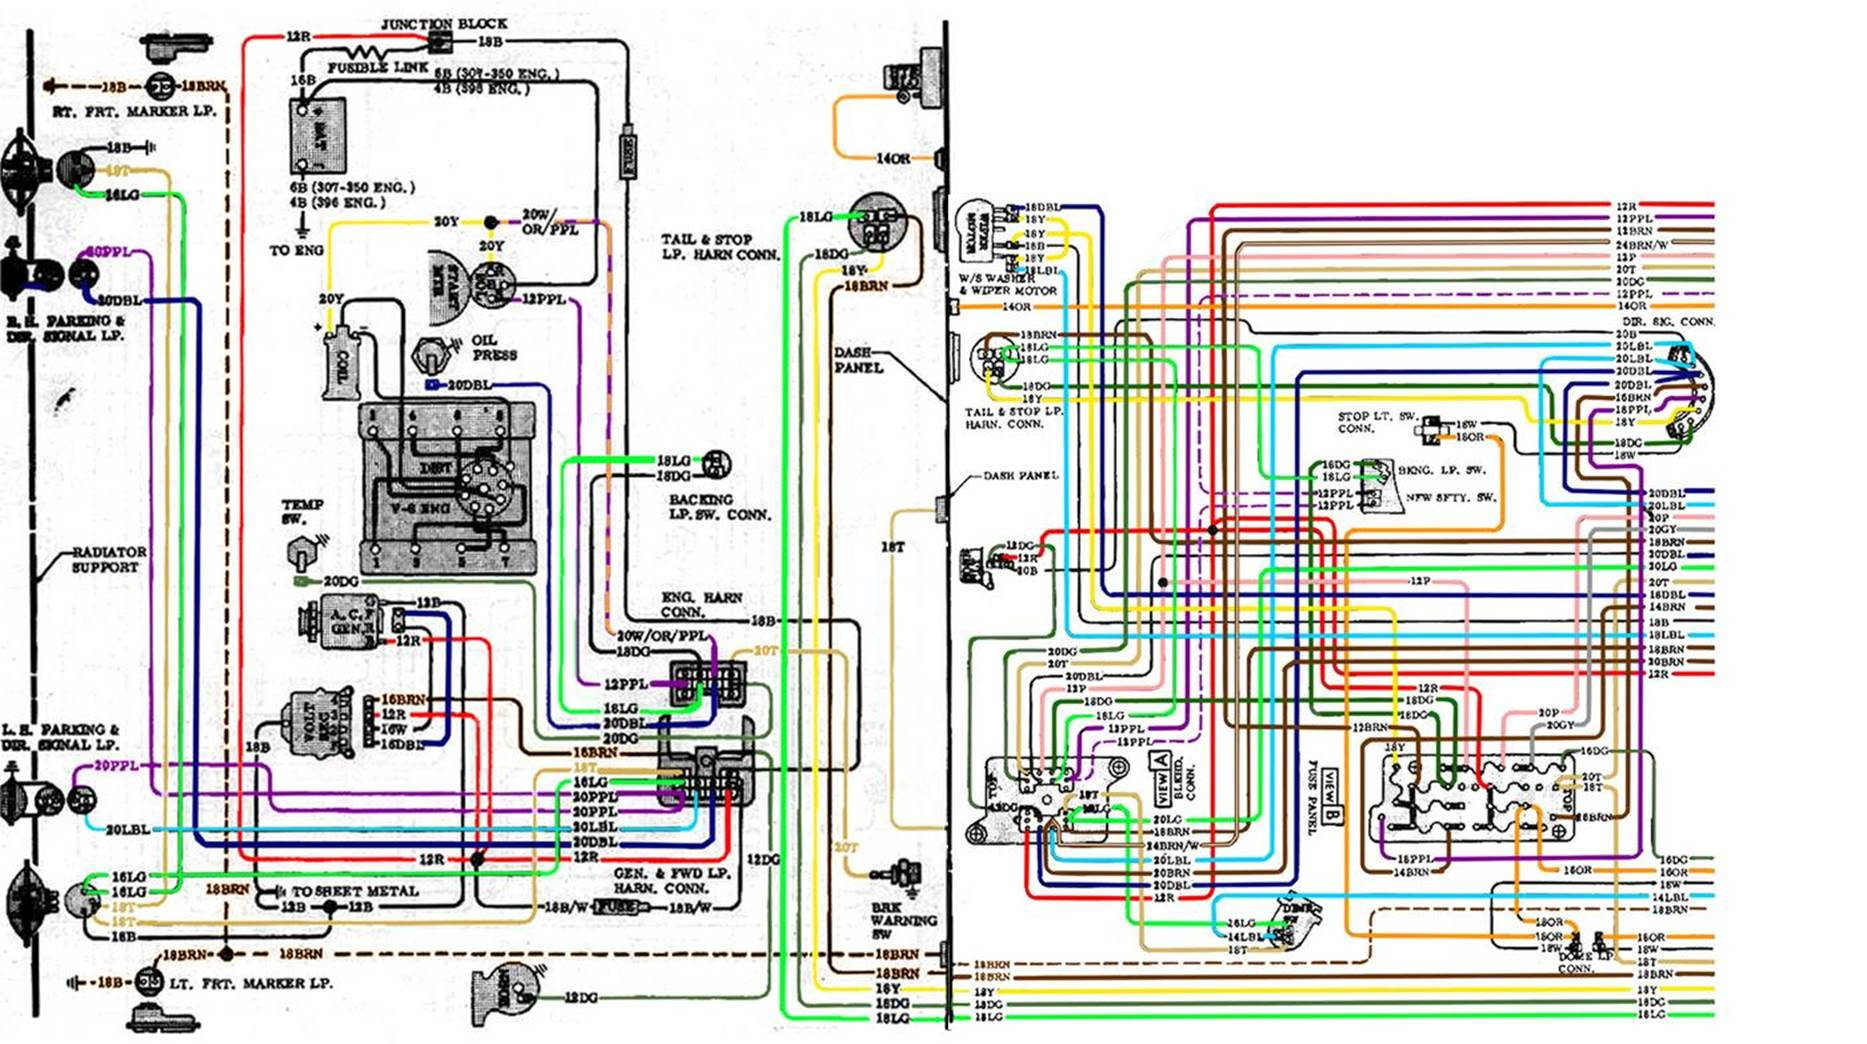 image002 gm wiring diagrams gm wiring diagrams online \u2022 wiring diagrams j  at aneh.co